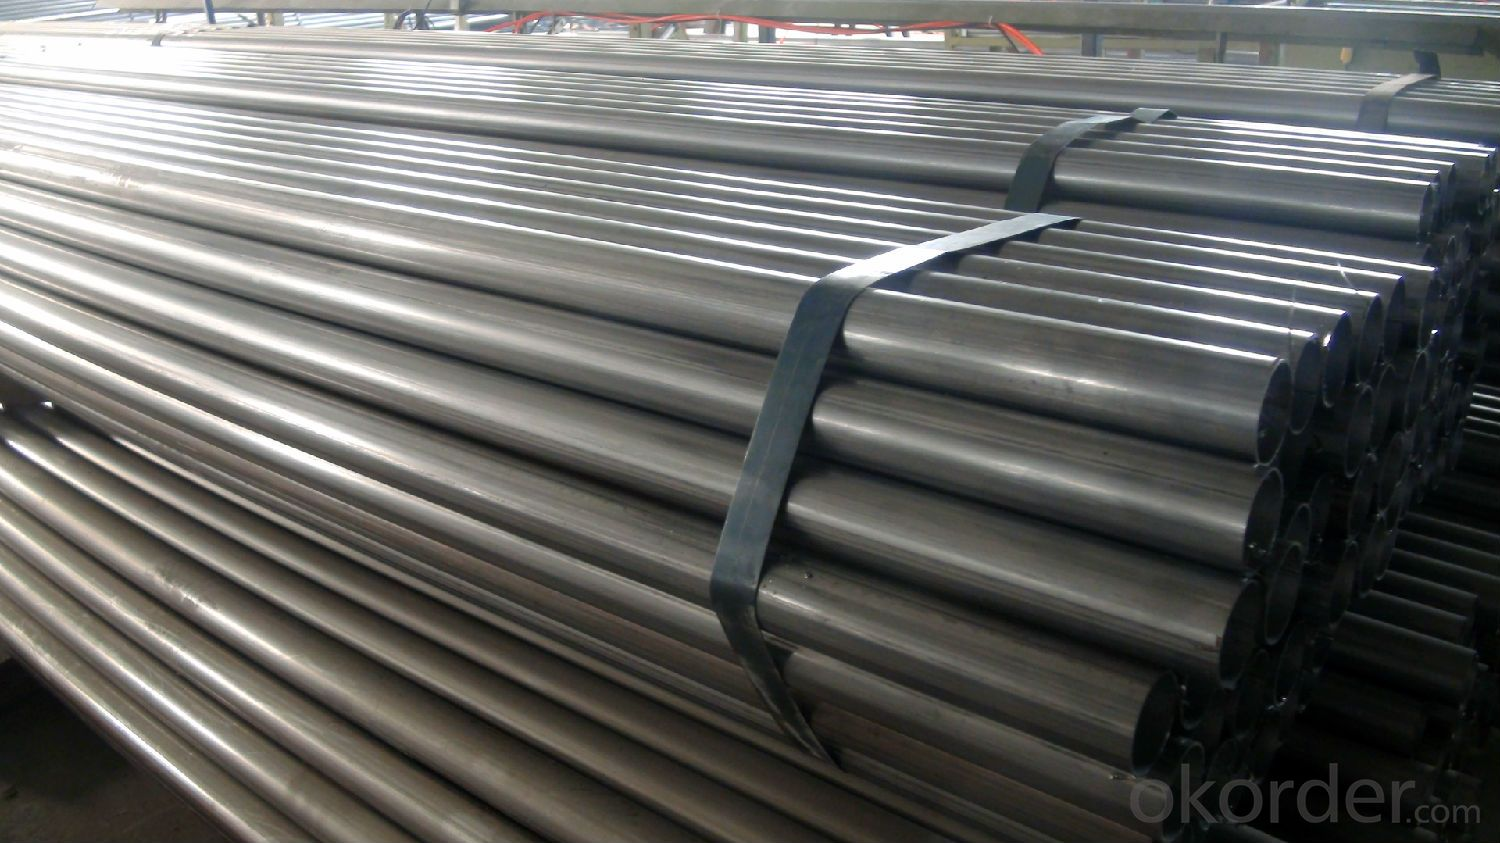 API Galvanized Stainless Steel Pipe With 2 Plastic Pipe Caps